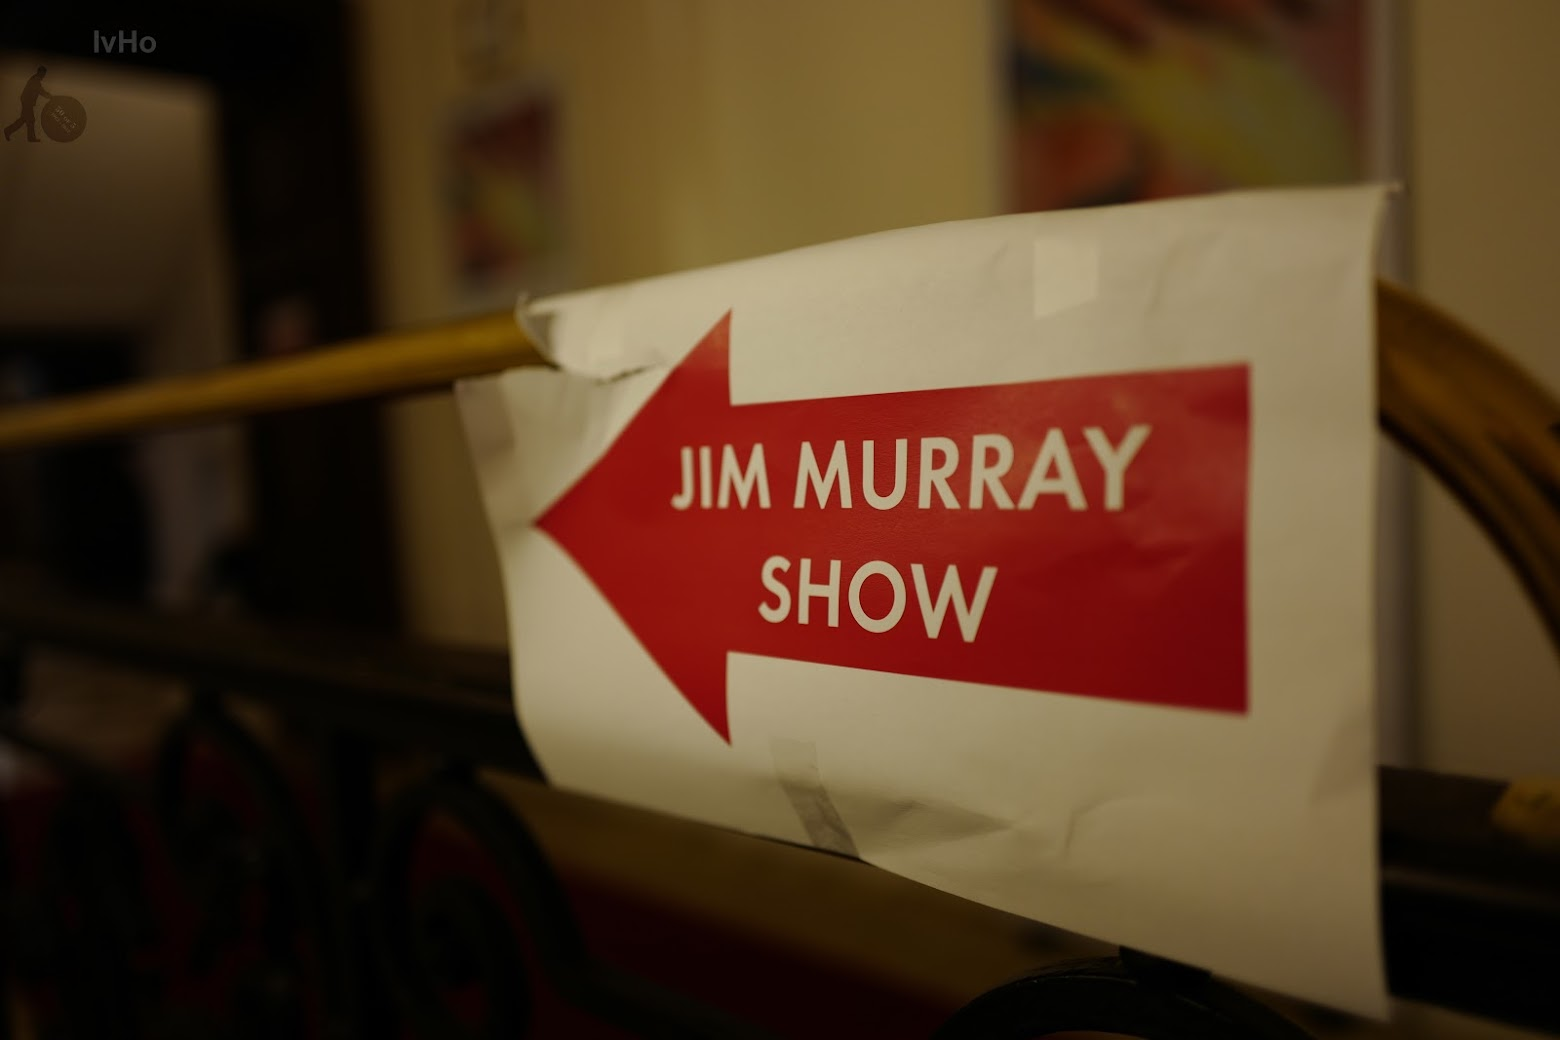 Jim Murray - direction sign